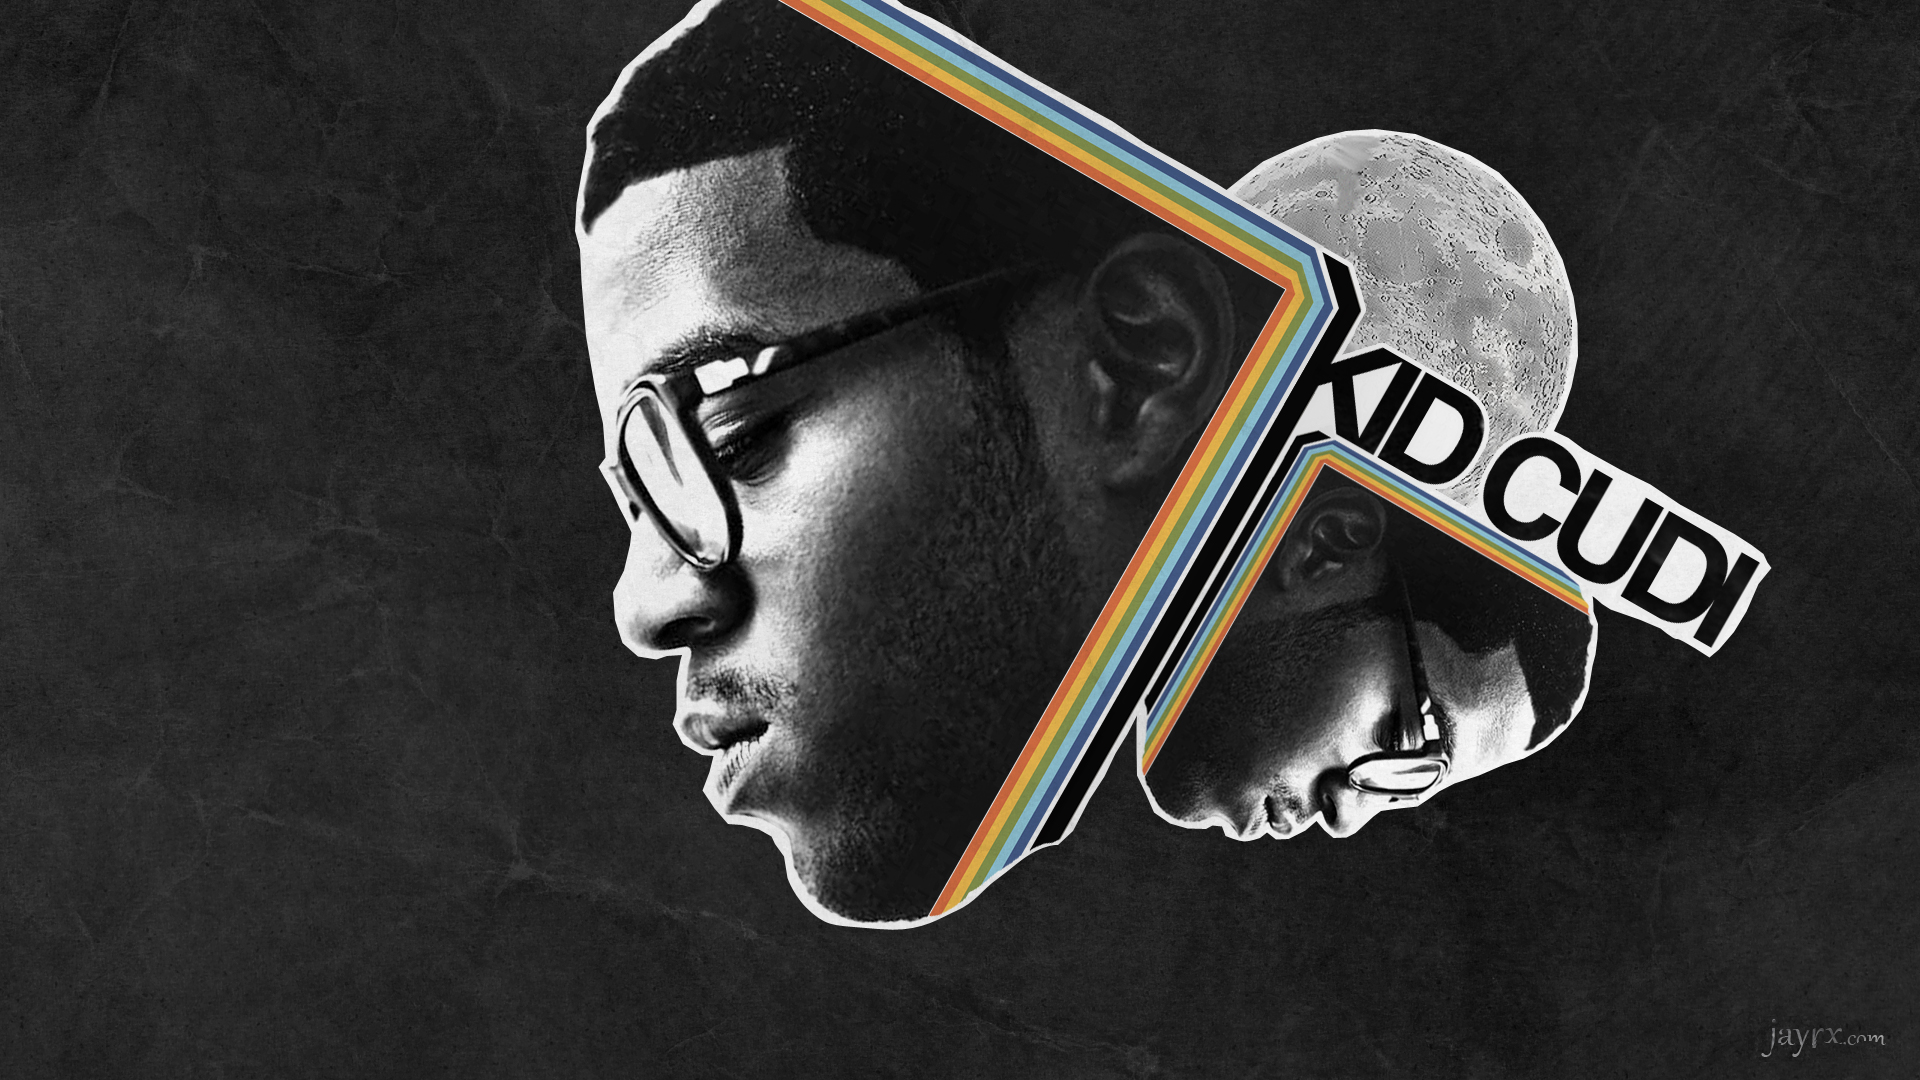 The Man On The Moon Kid Cudi Download